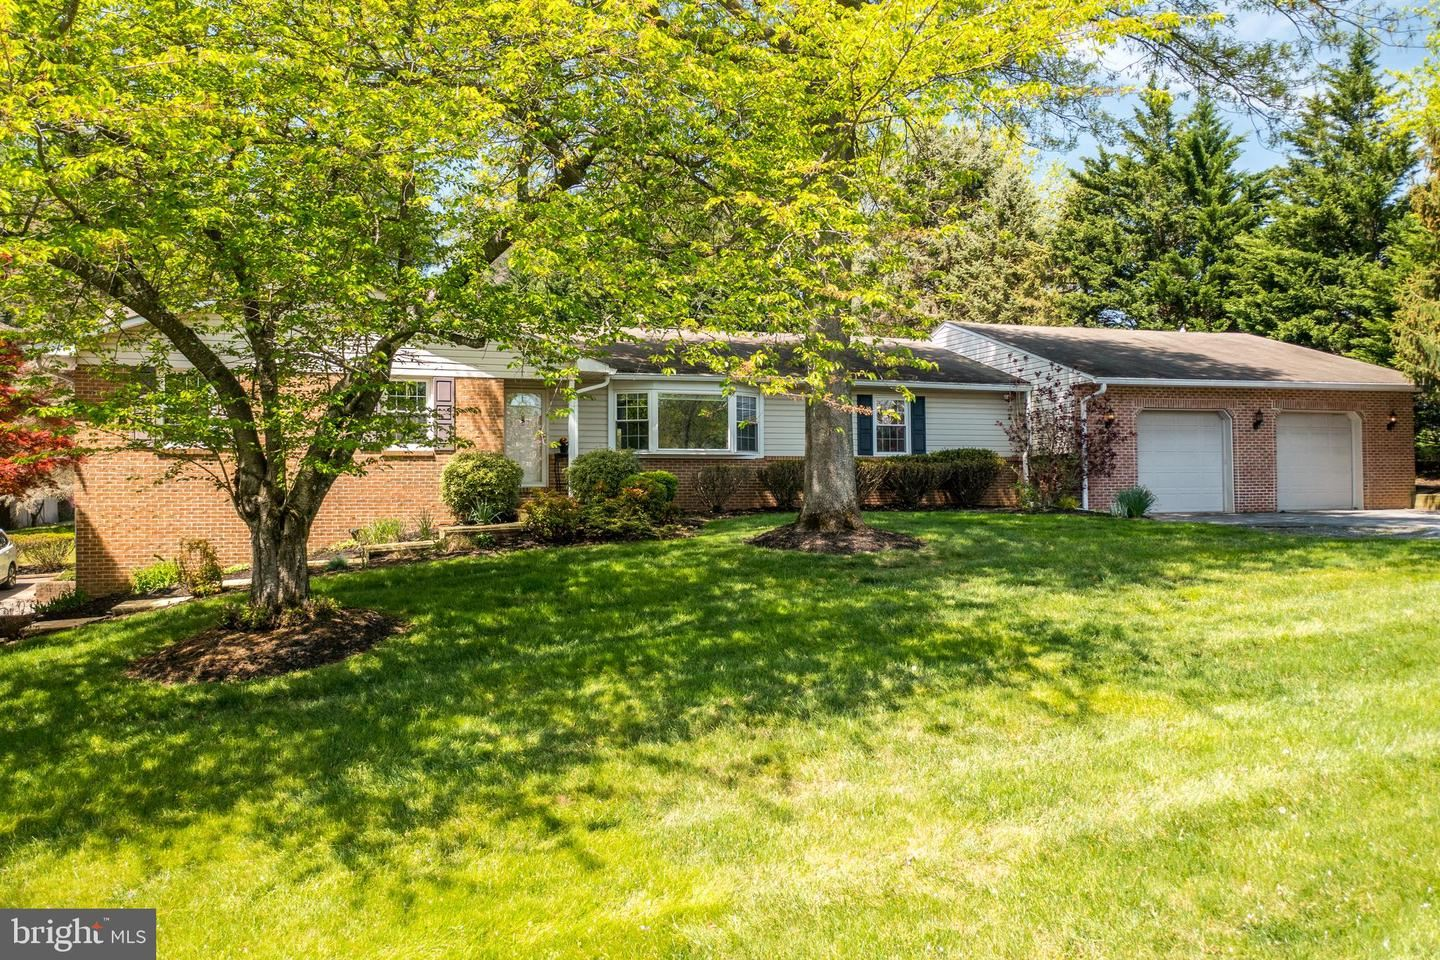 12214 BONITA AVE, Owings Mills, MD 21117 - MLS#: MDBC526746